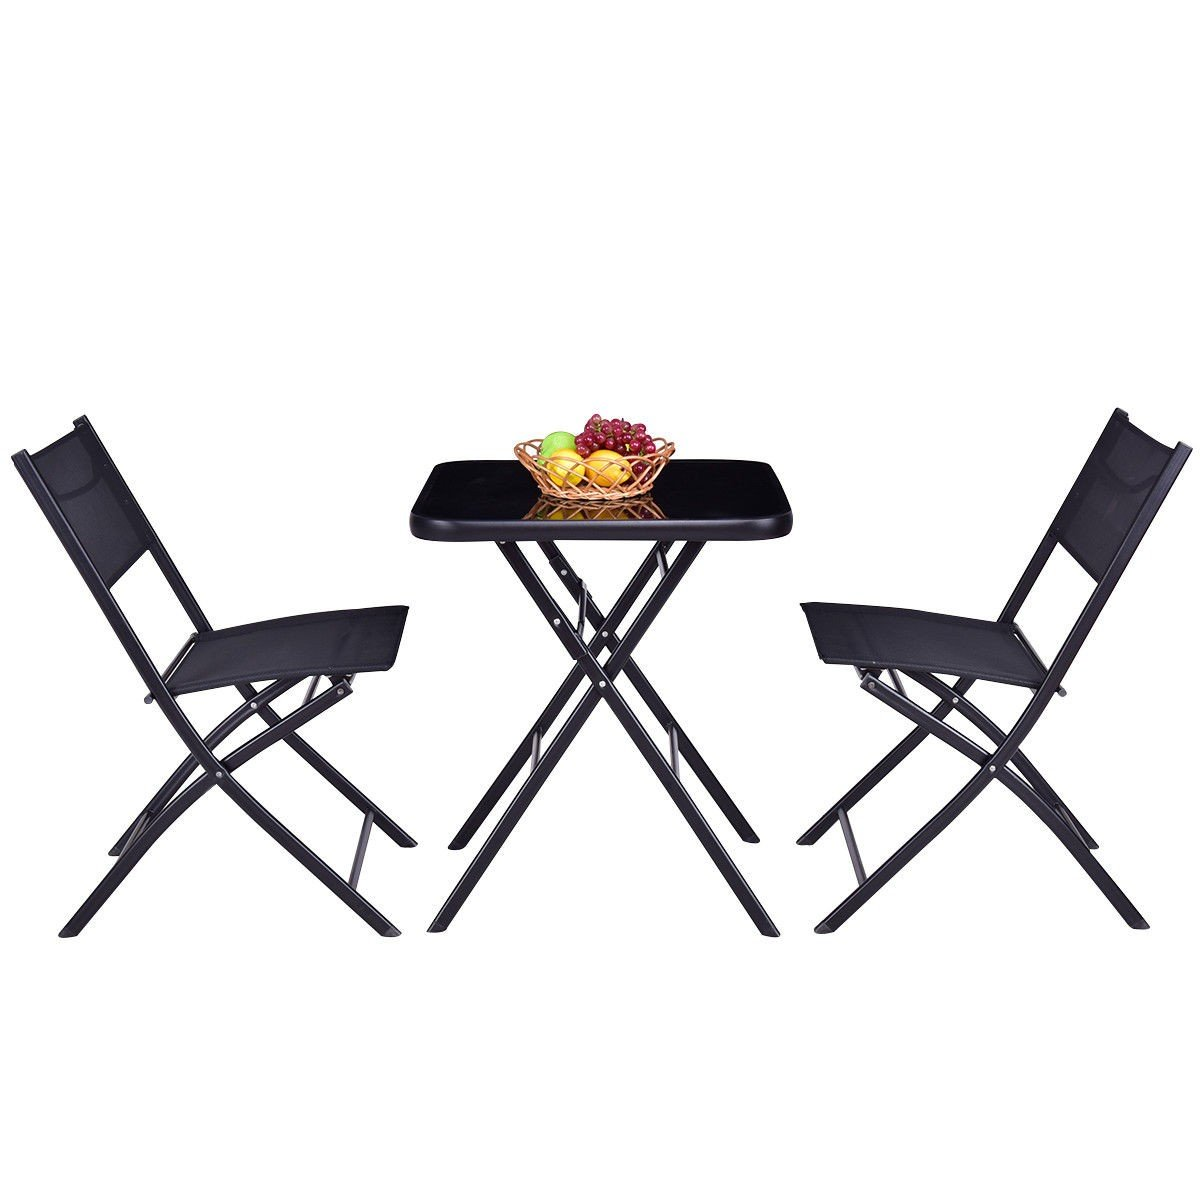 All4you Patio Bistro Table Set With Chairs Folding Outdoor Seater Coffee Table Set Black Backyard Balcony Furniture by All4you (Image #3)